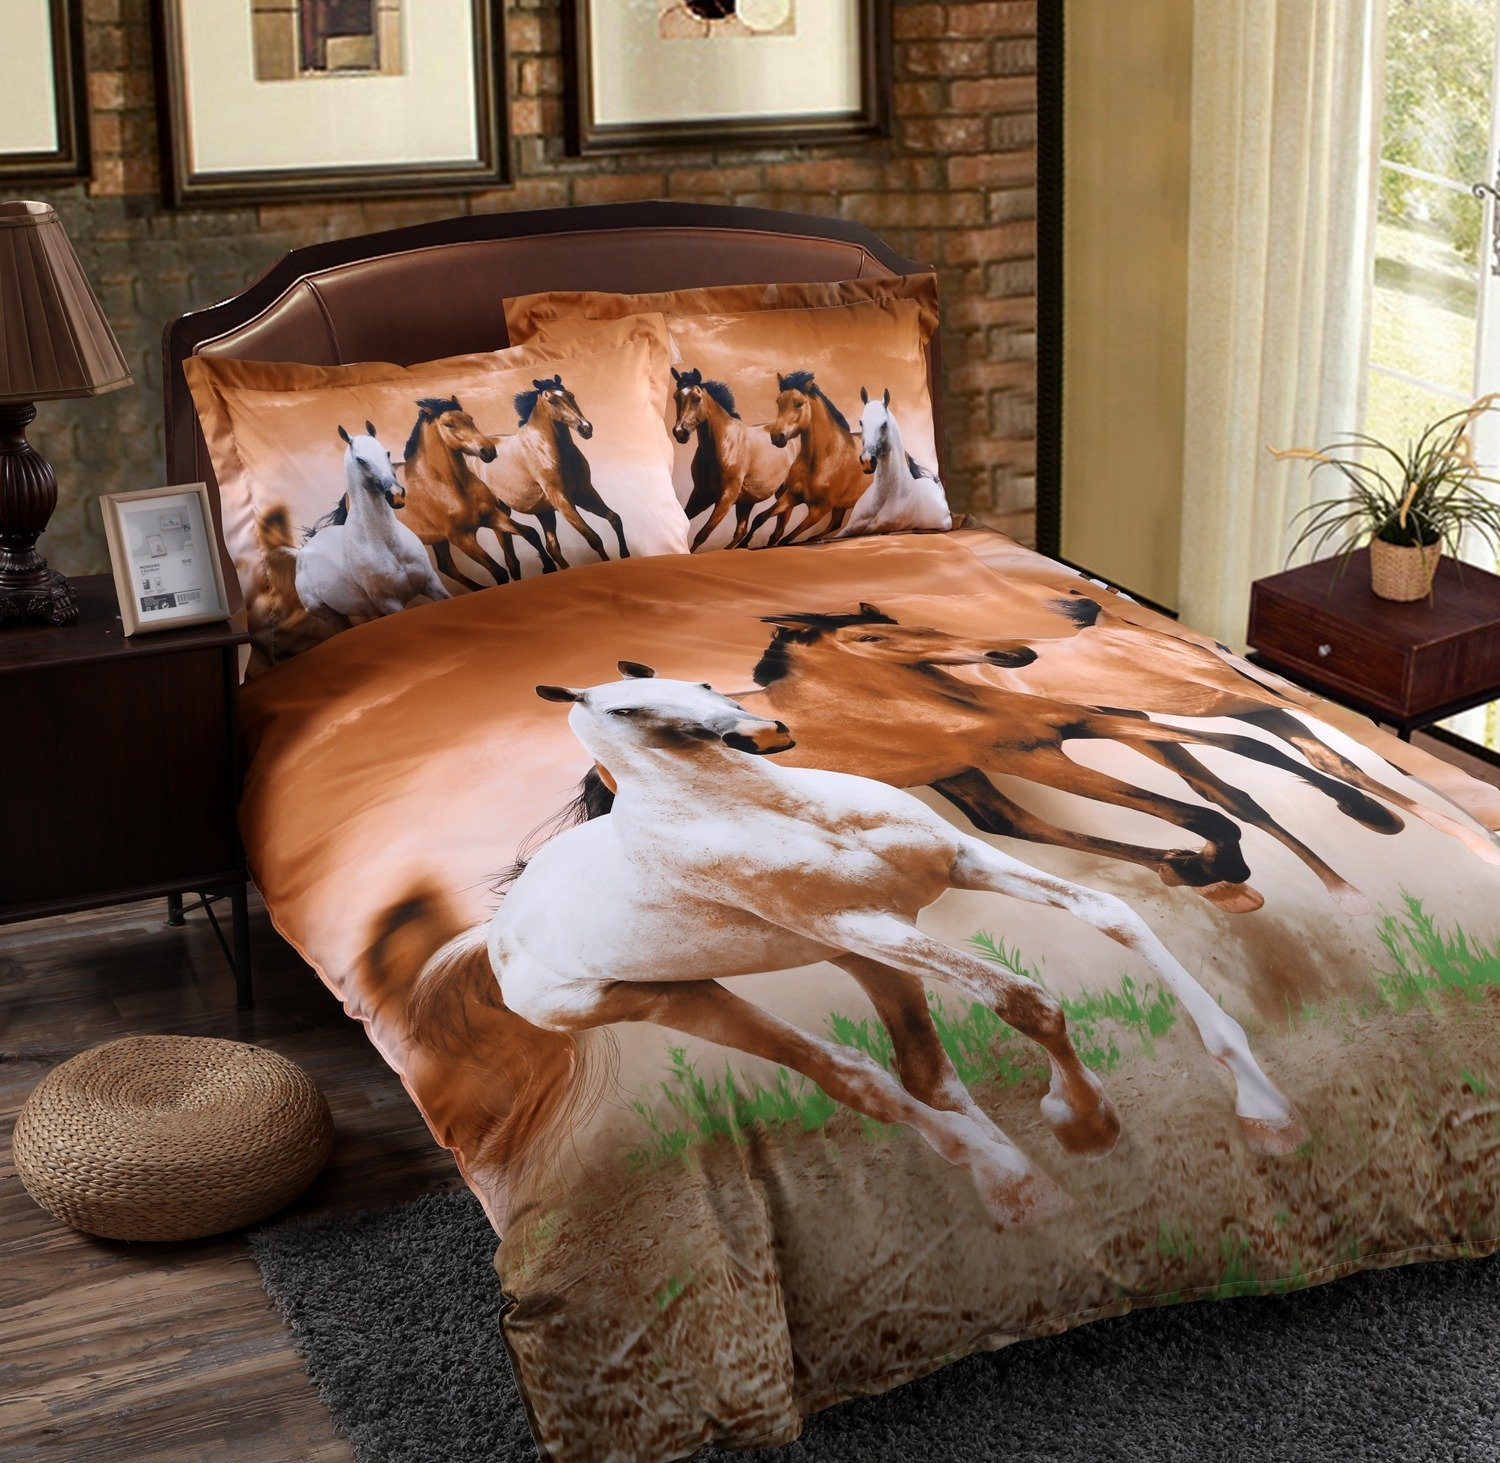 Babycare Pro Galloping Horse Reactive Print Polyester 3D Duvet Cover Bedding Sets Twin Size 4 Pieces  bedding set 8 piece | Orrissa 8 Piece Comforter Set by Madison Park Babycare Pro Galloping Horse Reactive Print Polyester 3D Duvet Cover font b Bedding b font font